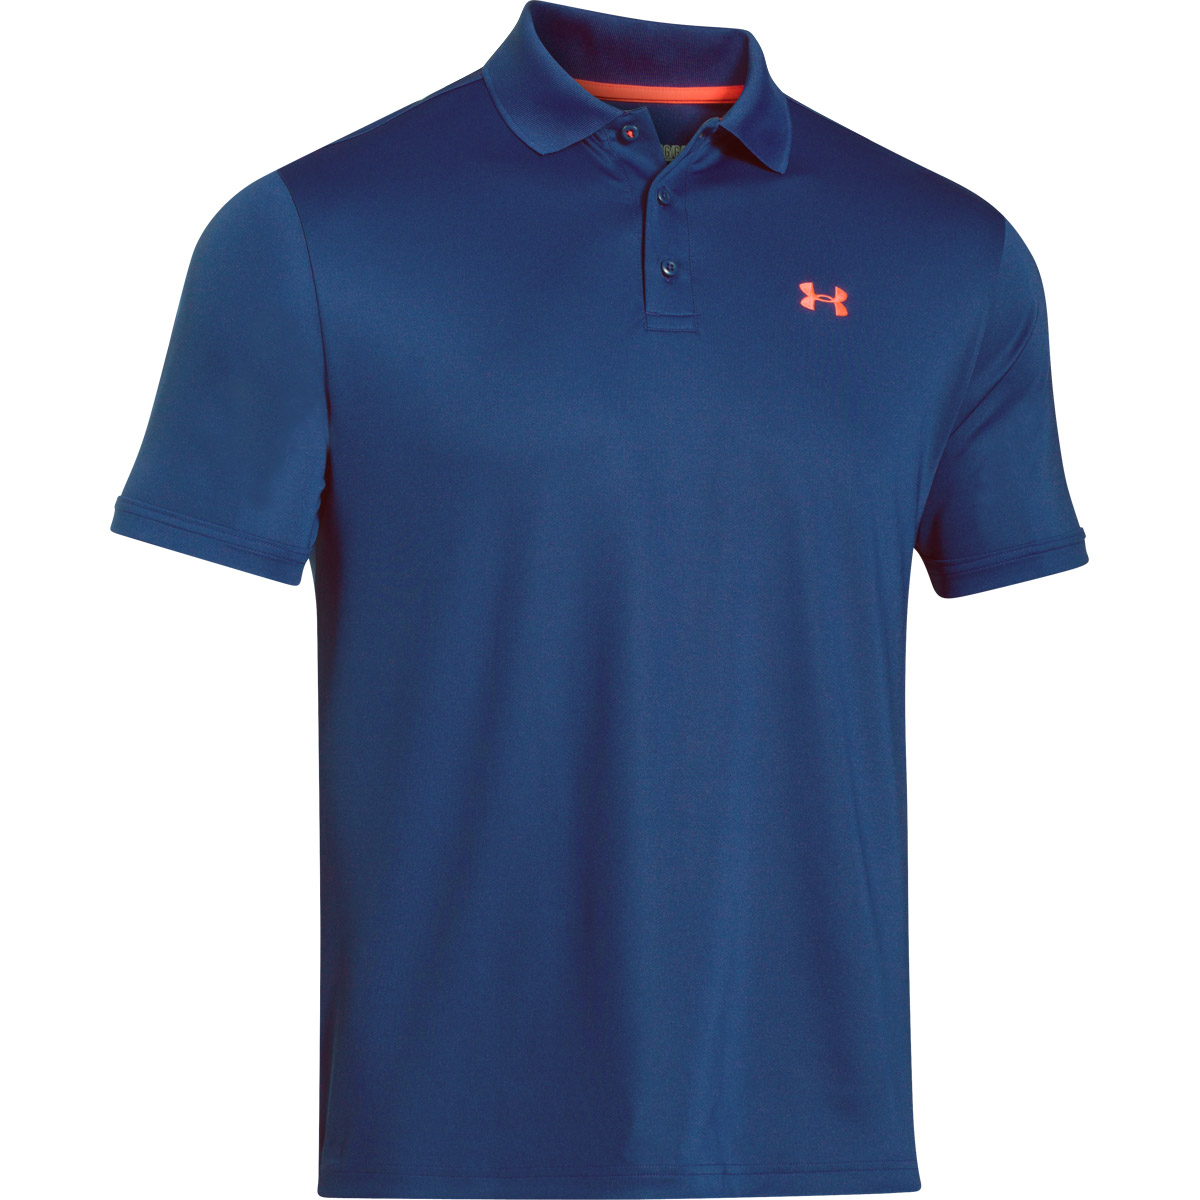 under armour 2015 mens ua performance golf polo shirt